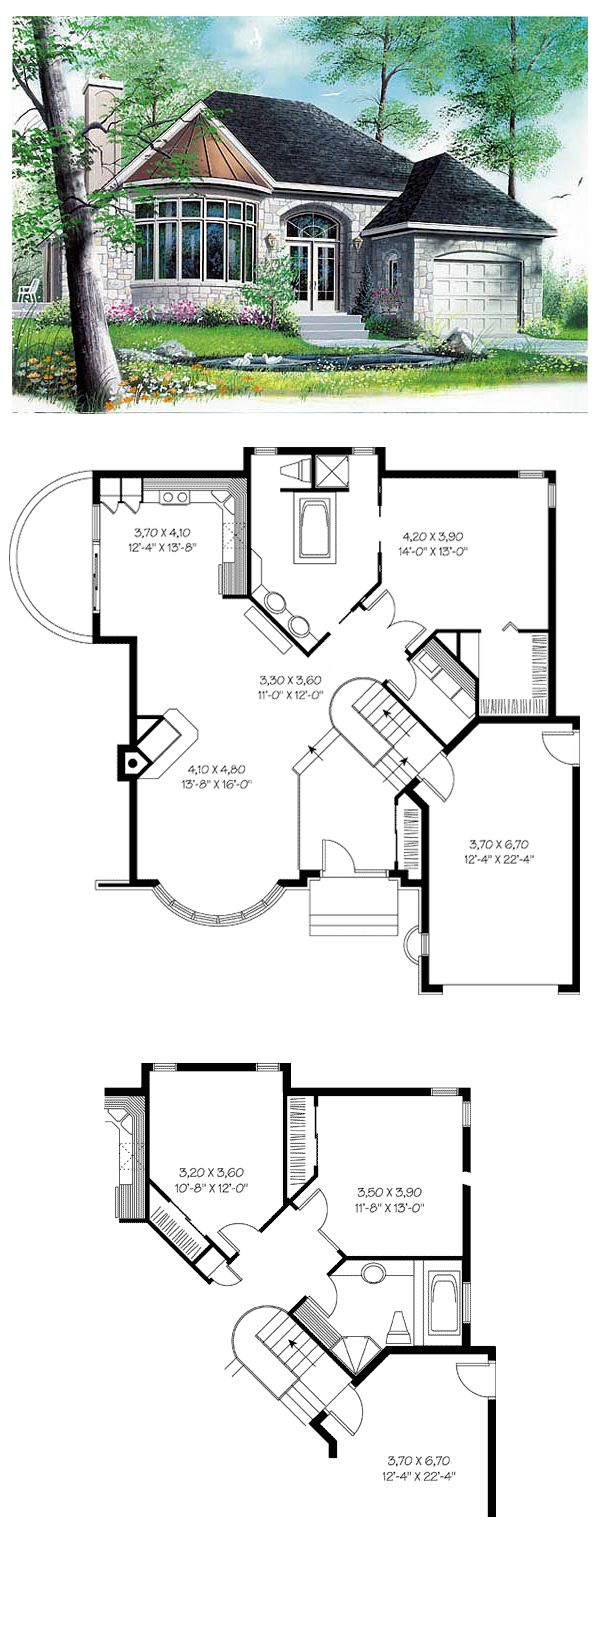 Victorian Style House Plan 65084 with 1 Bed, 1 Bath, 1 Car ... on